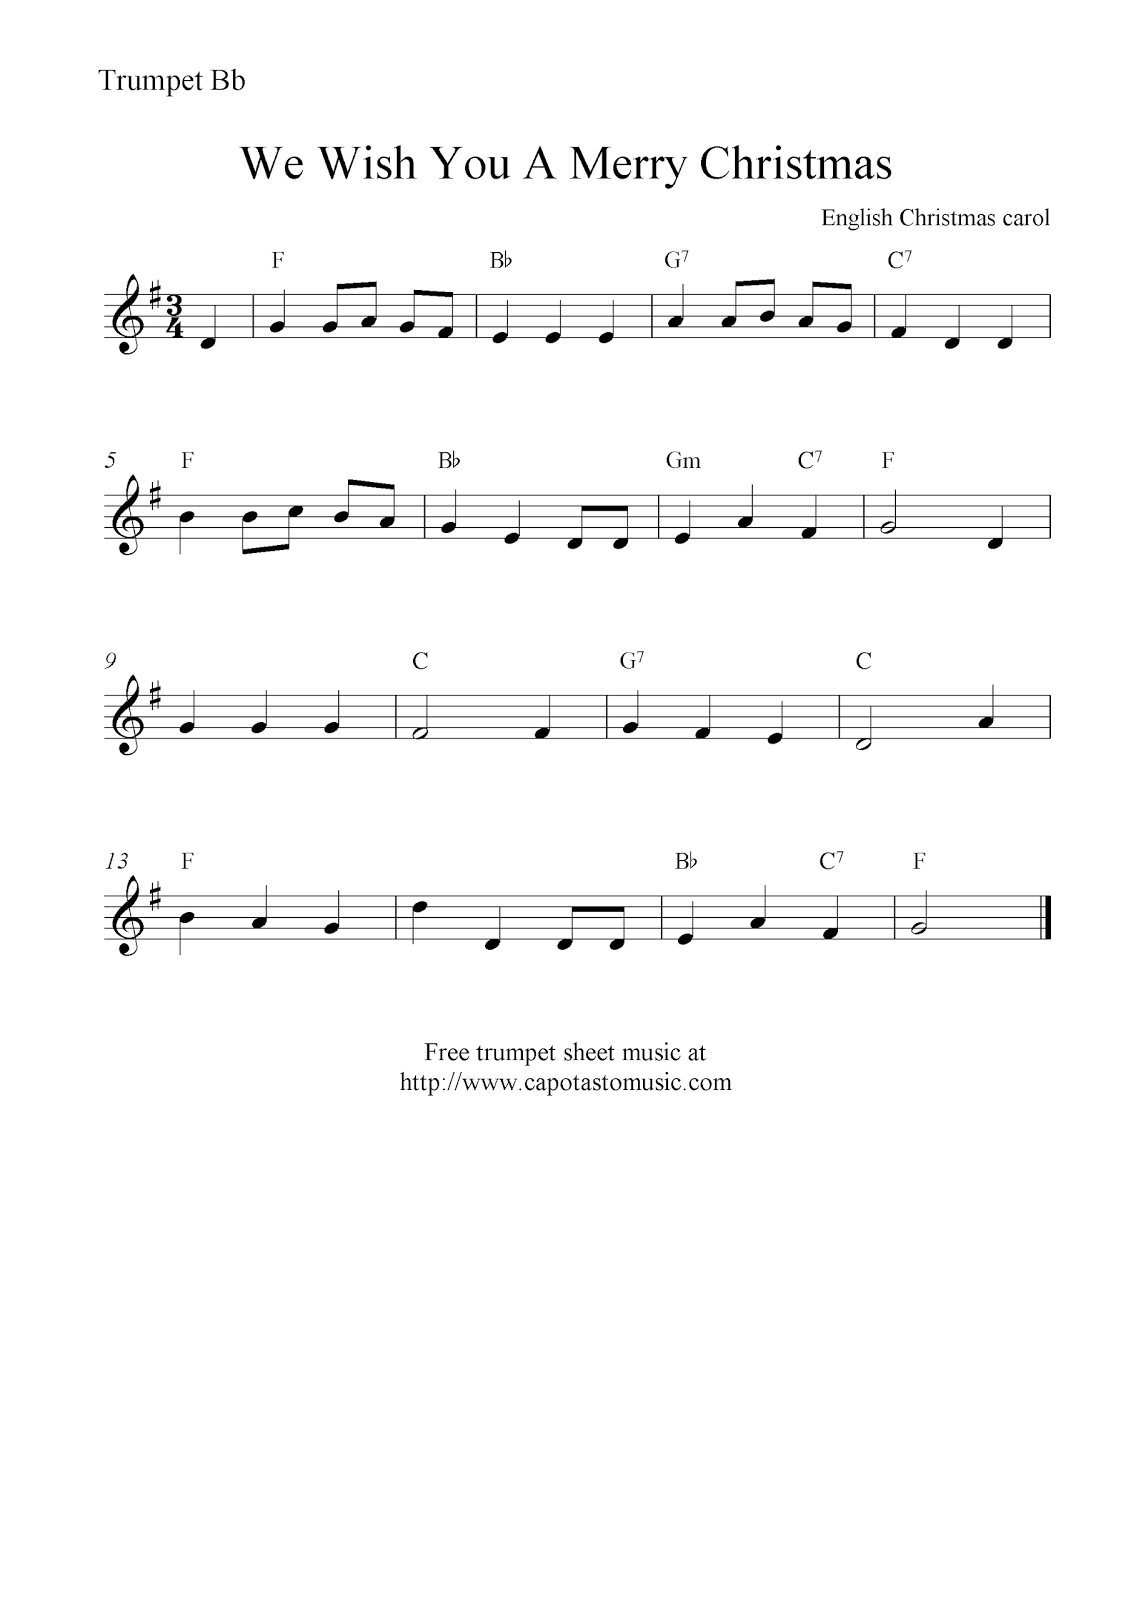 Wish You Merry Christmas Piano Notes.We Wish You A Merry Christmas Free Christmas Trumpet Sheet